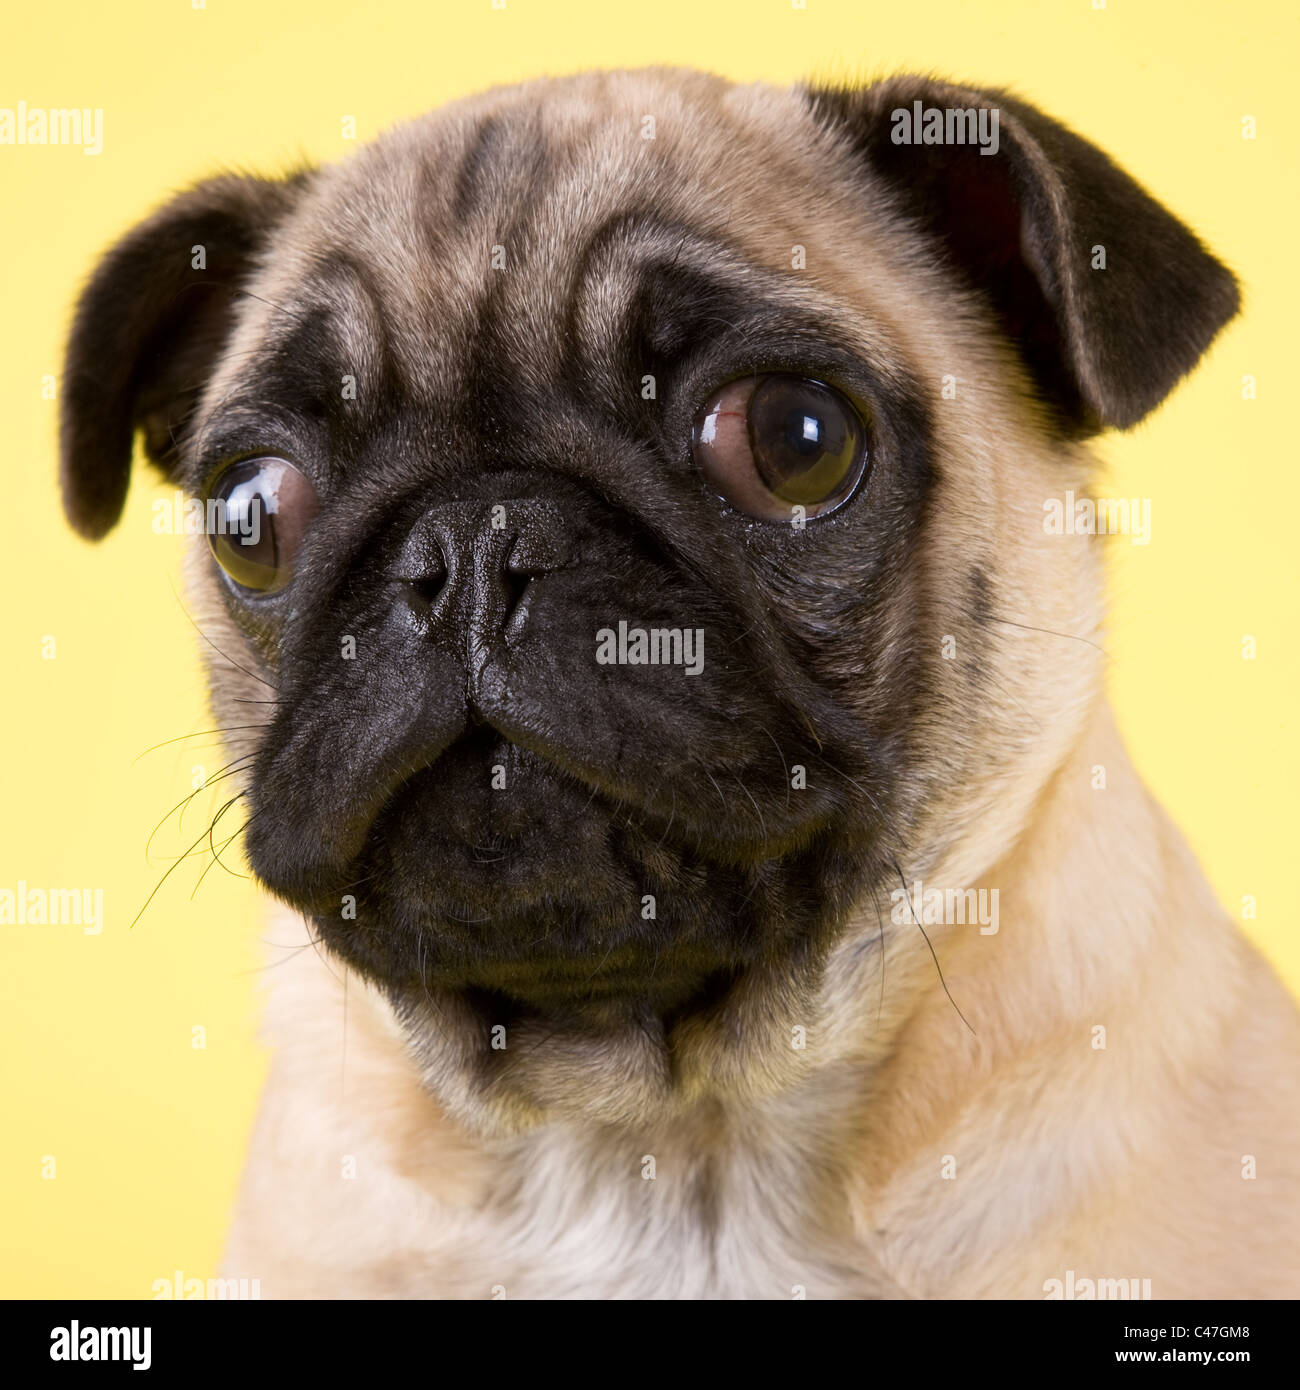 Studio portrait of a Pug dog photographed while waiting to be adopted from the humane society. - Stock Image